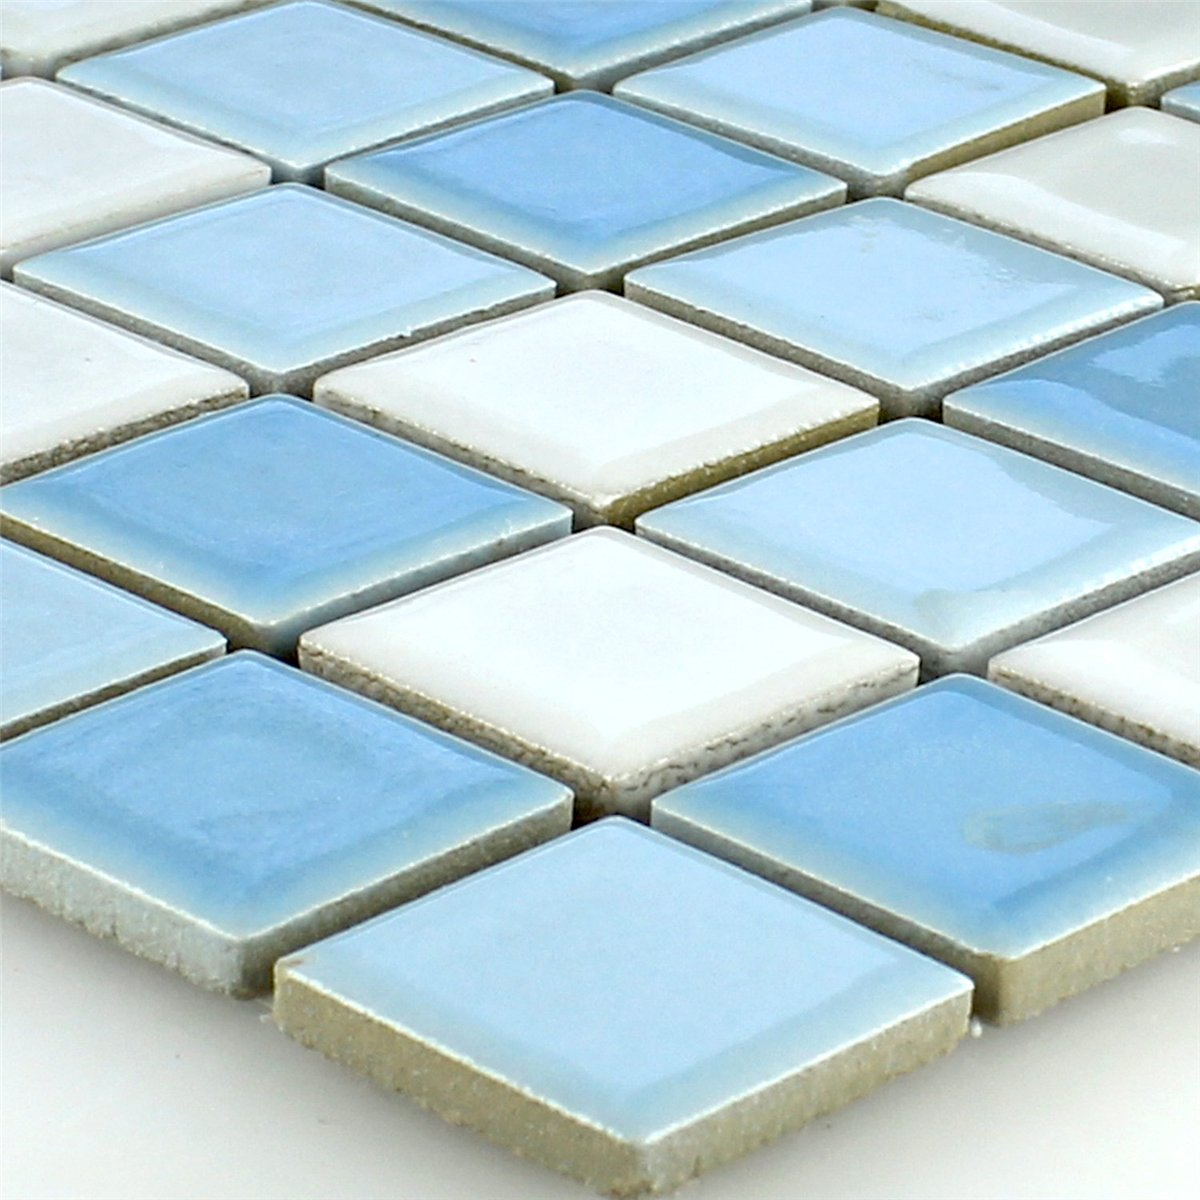 ceramic mosaic tiles blue white 25x25x5mm. Black Bedroom Furniture Sets. Home Design Ideas